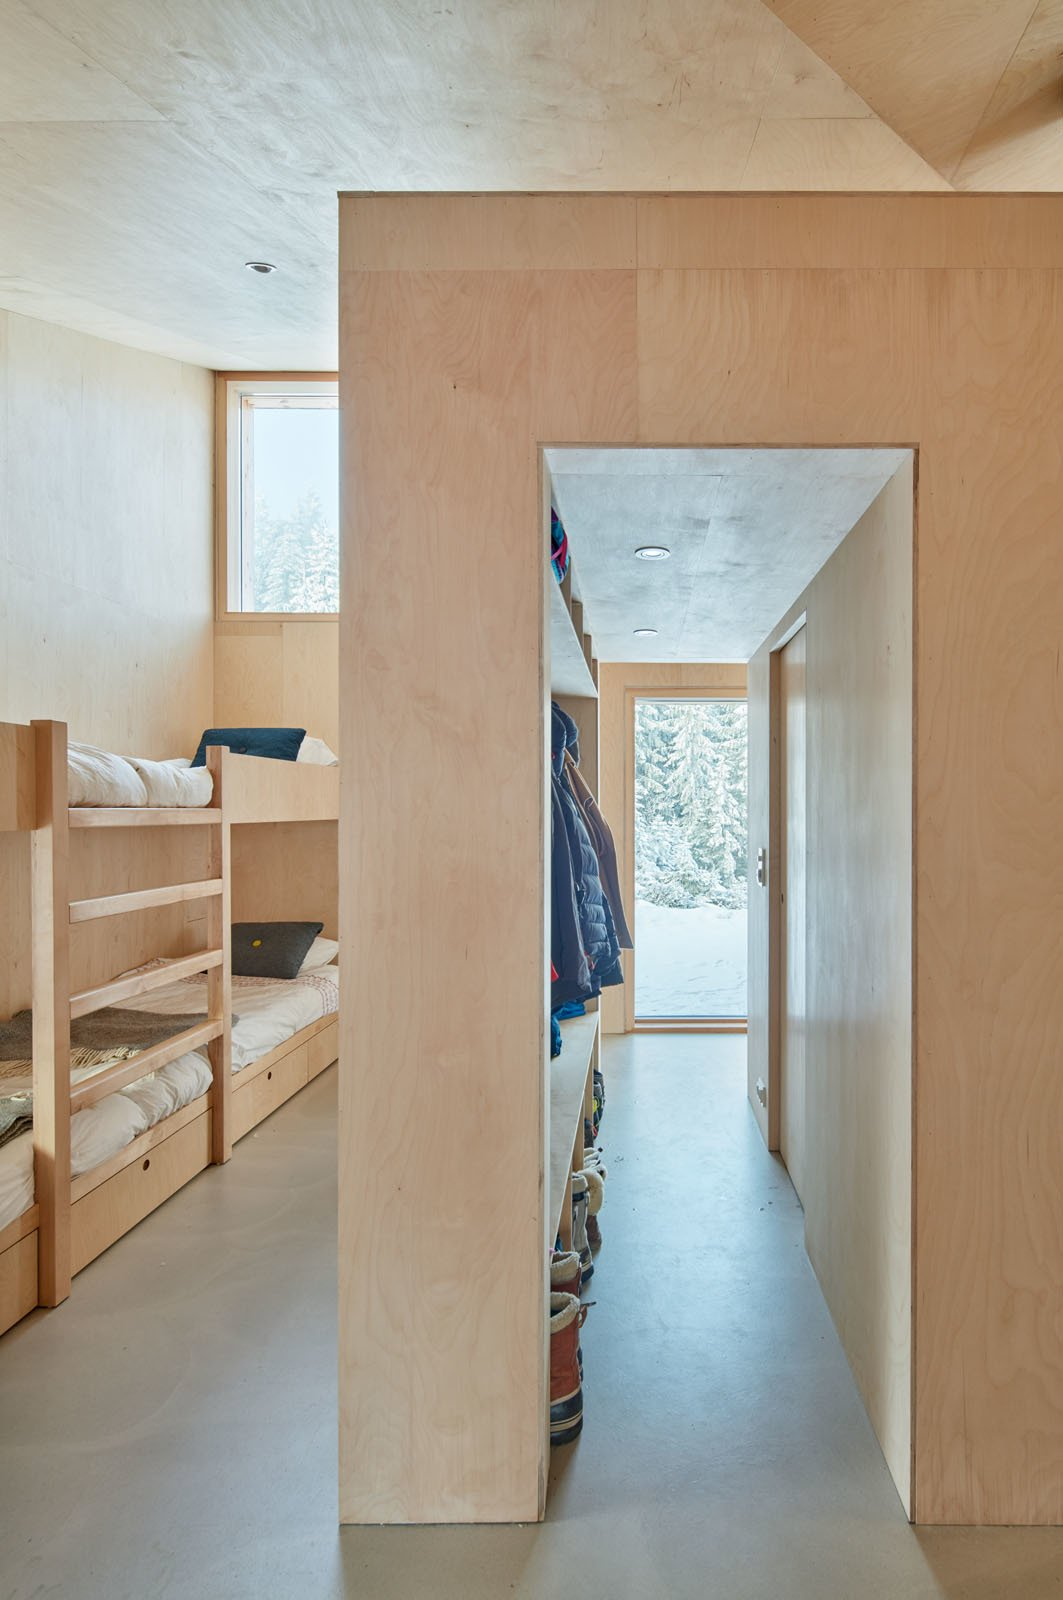 Bedroom, Recessed Lighting, Concrete Floor, and Bunks Each bedroom has two access doors, which close completely flush for a clean appearance.  Photos from A Pinwheel-Shaped Cabin in Norway Is a Fresh Take on the Traditional Hytte